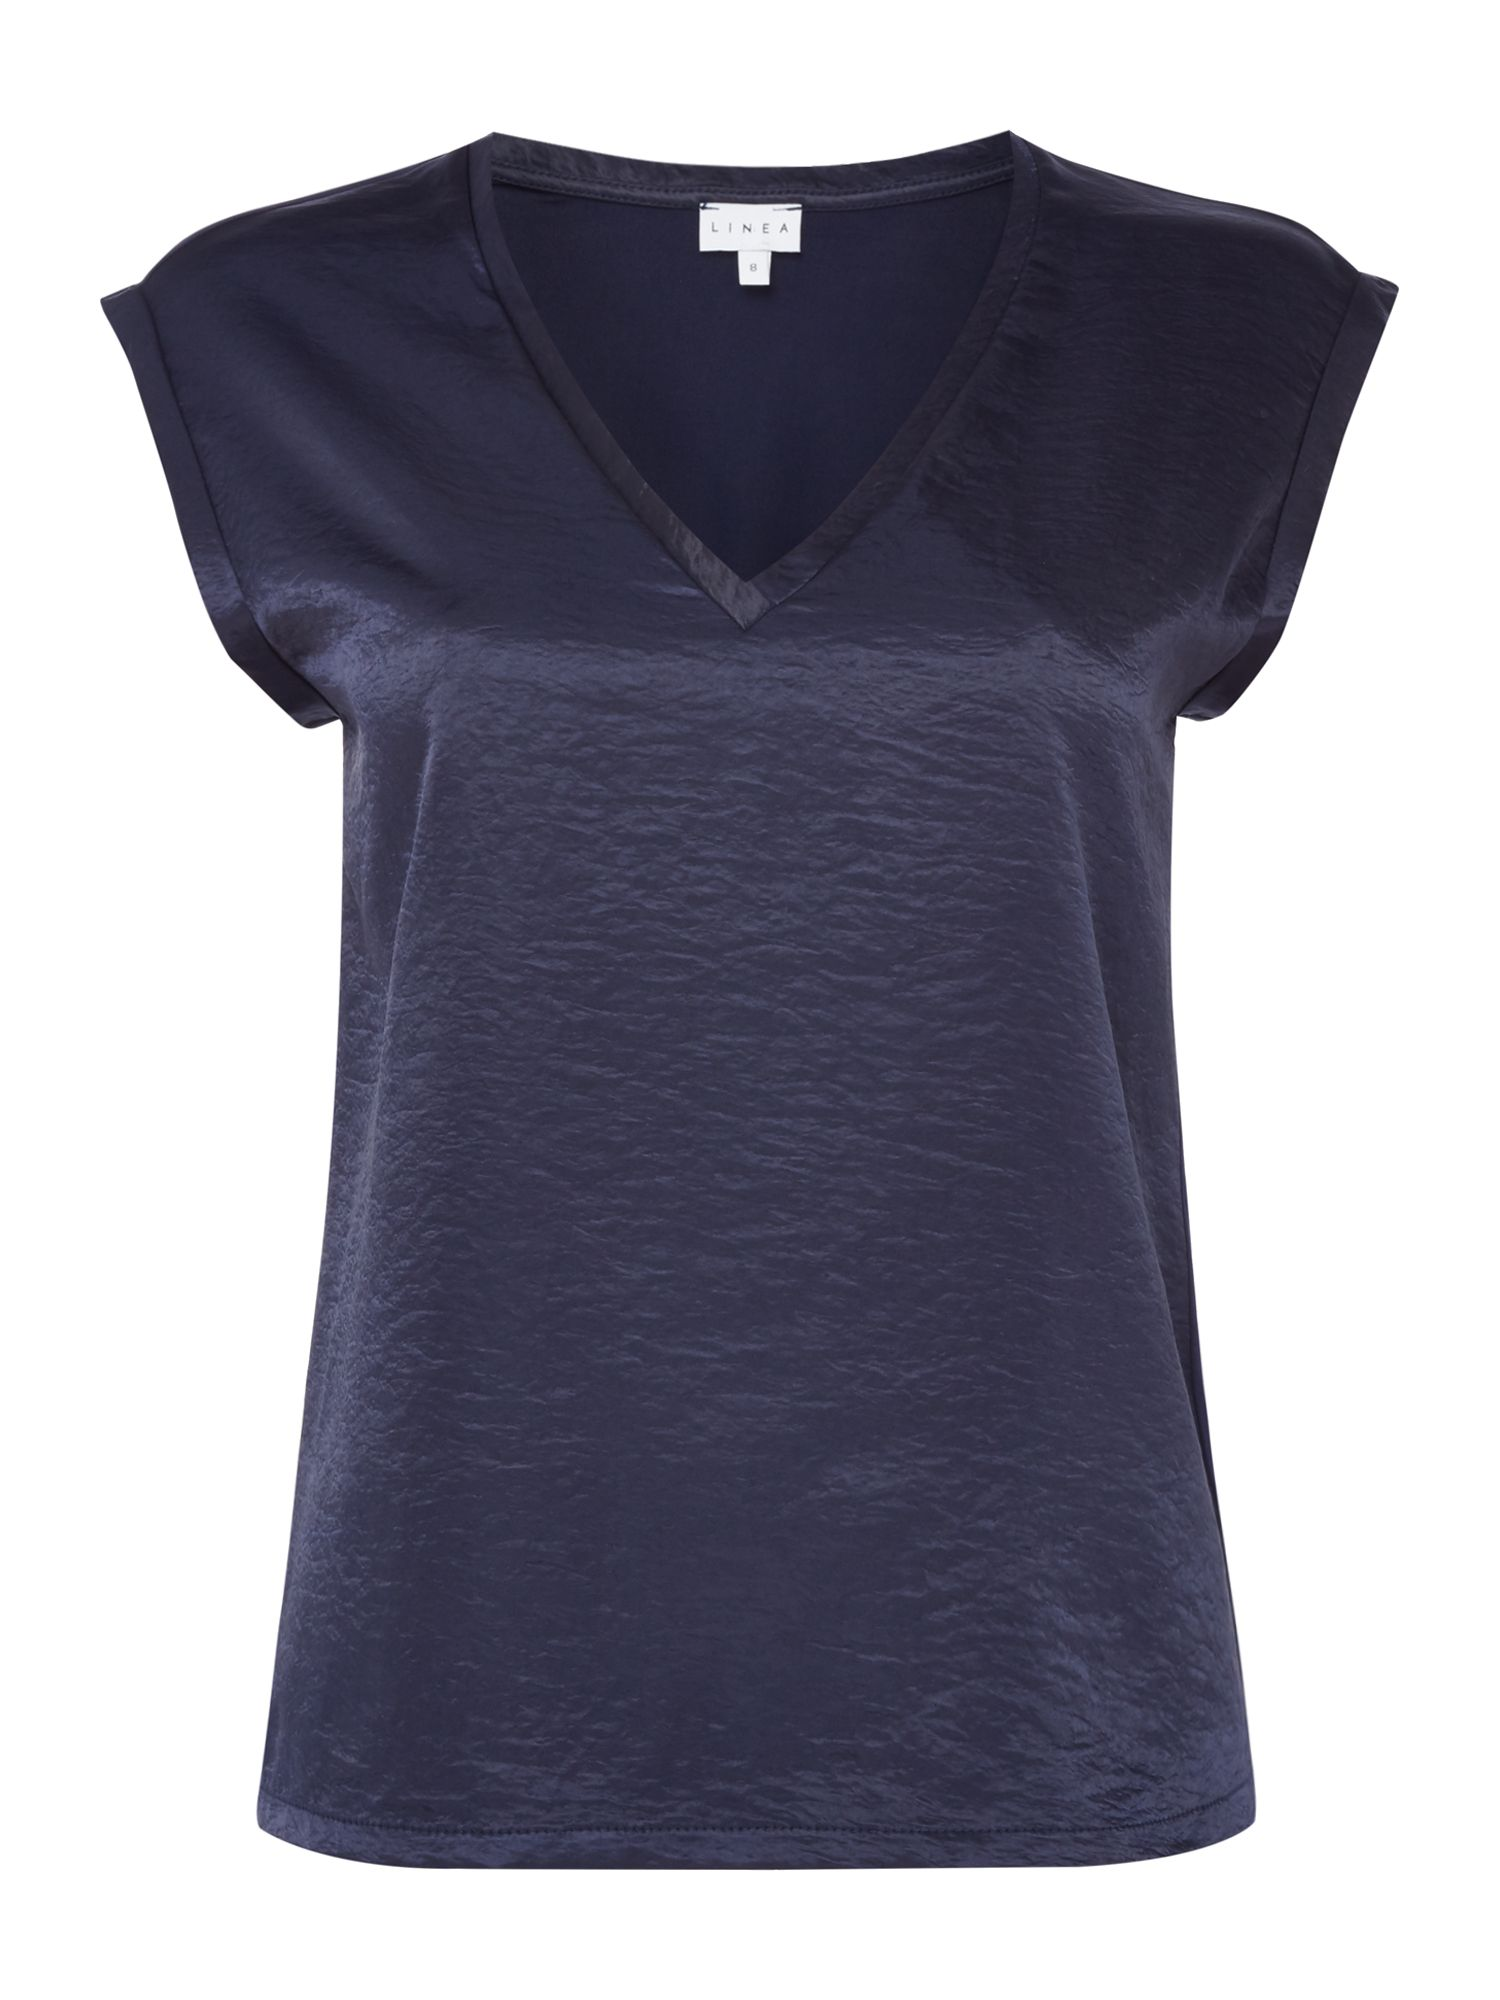 Linea Mae woven front jersey back t shirt, Blue